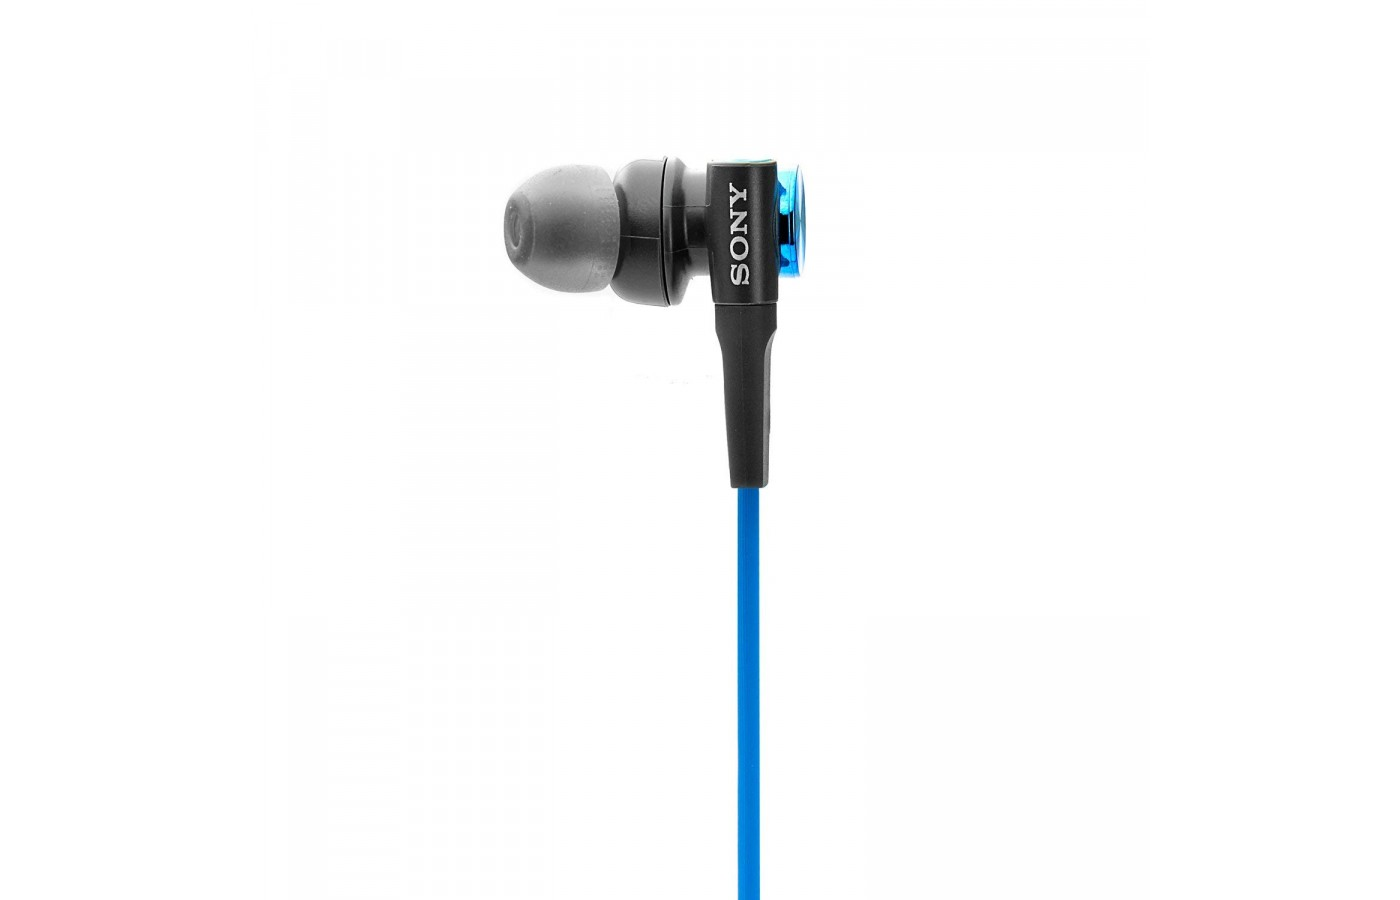 The Sony MDRXB50AP offers balanced sound for a more enjoyable listening experience.